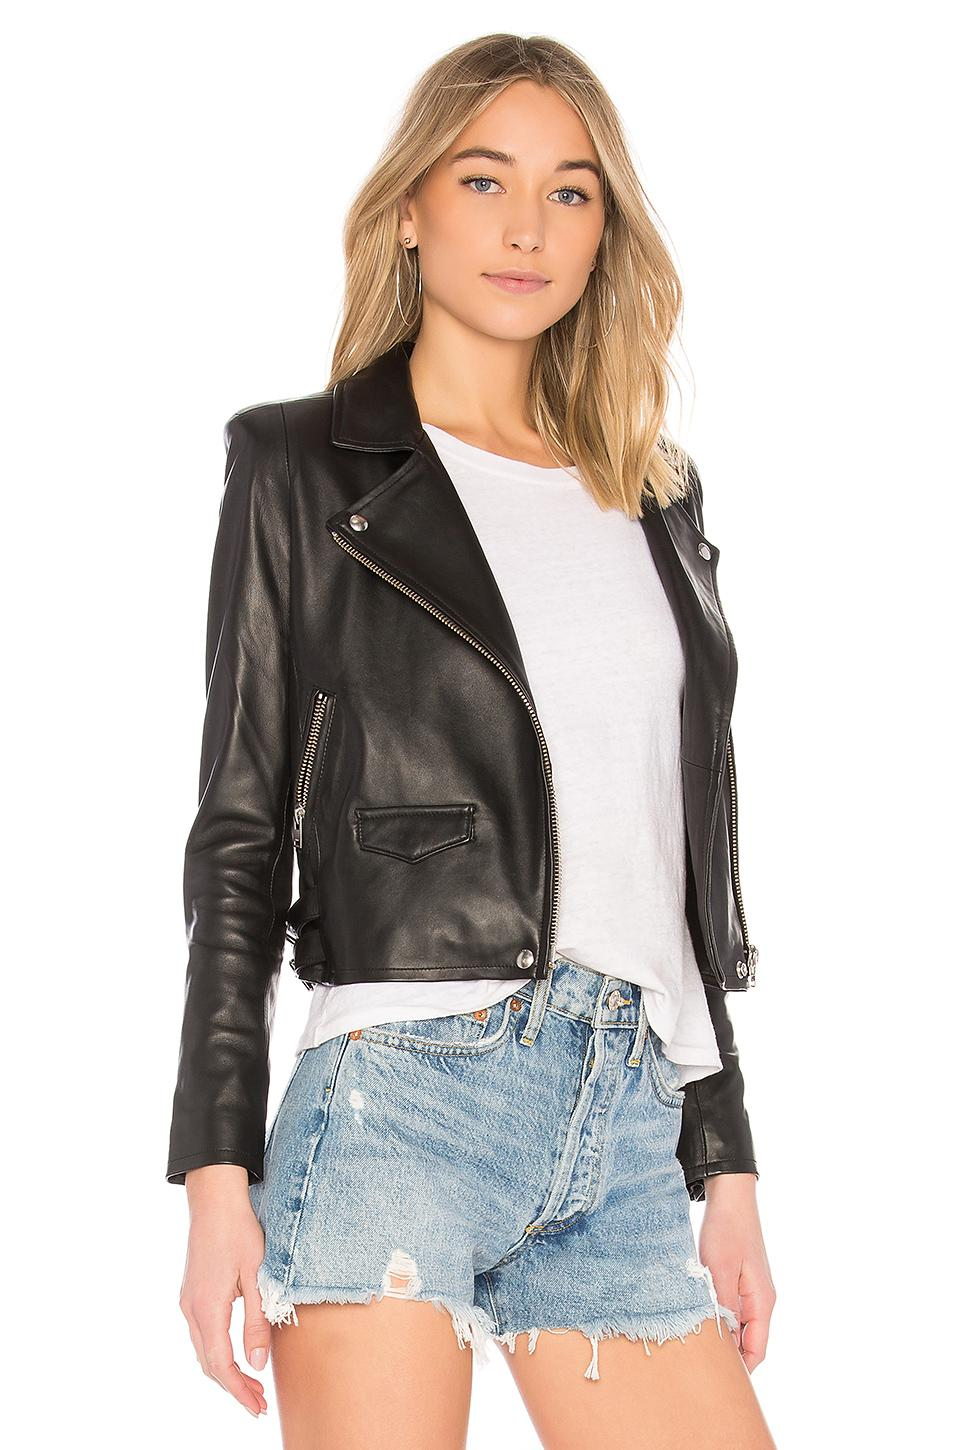 Clearance Low Price Anil Leather Jacket Iro Best Store To Get Purchase Your Favorite  Clearance Shopping Online 7x9RgVfs